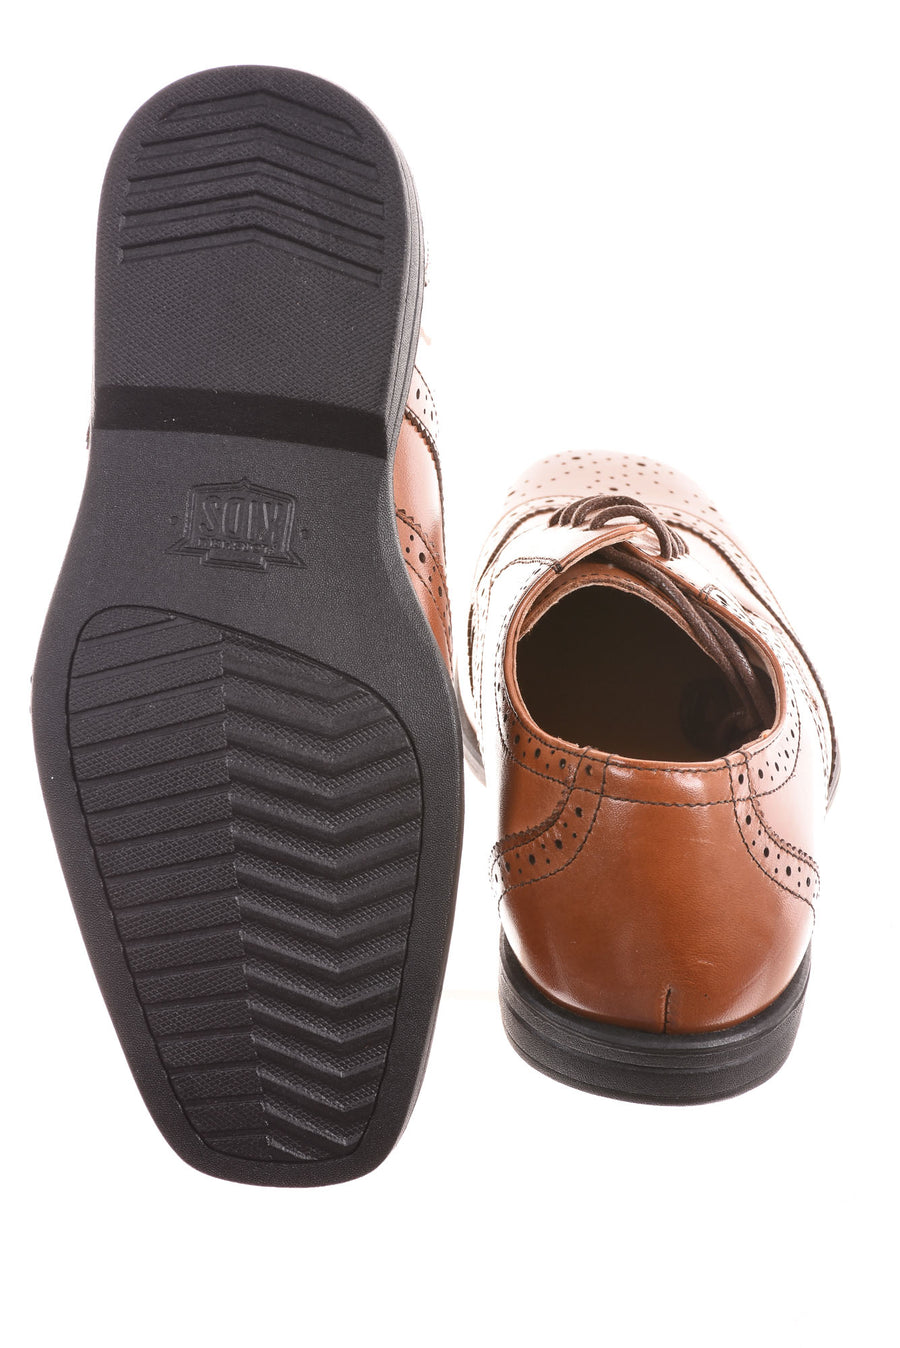 USED Florsheim Boy's Shoes 3 Brown